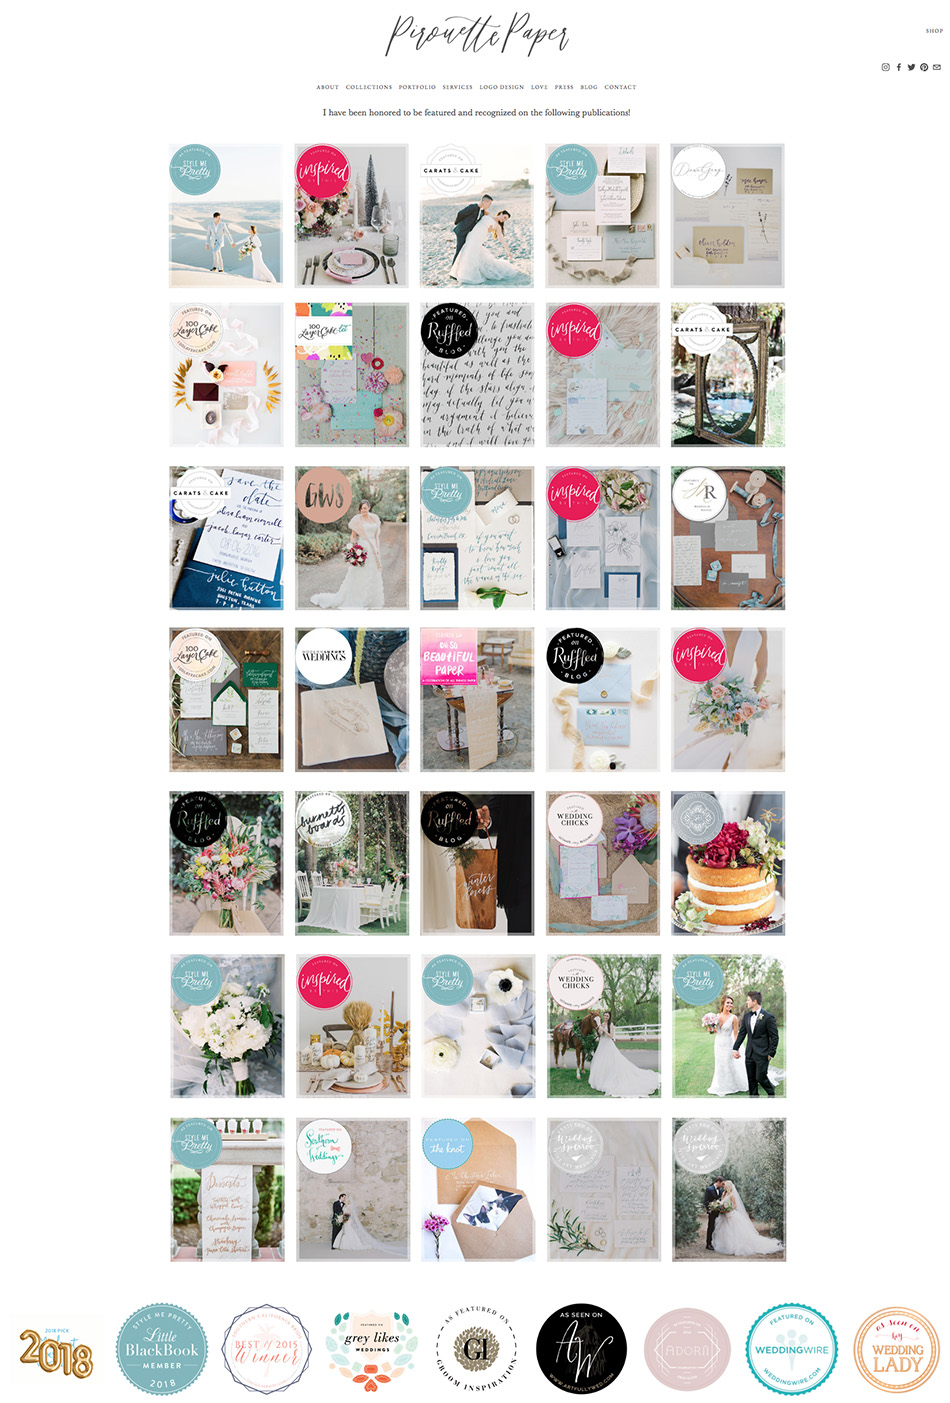 Press Page Design Ideas | Squarespace Website Designer | Wedding Industry Experts | The Editor's Touch